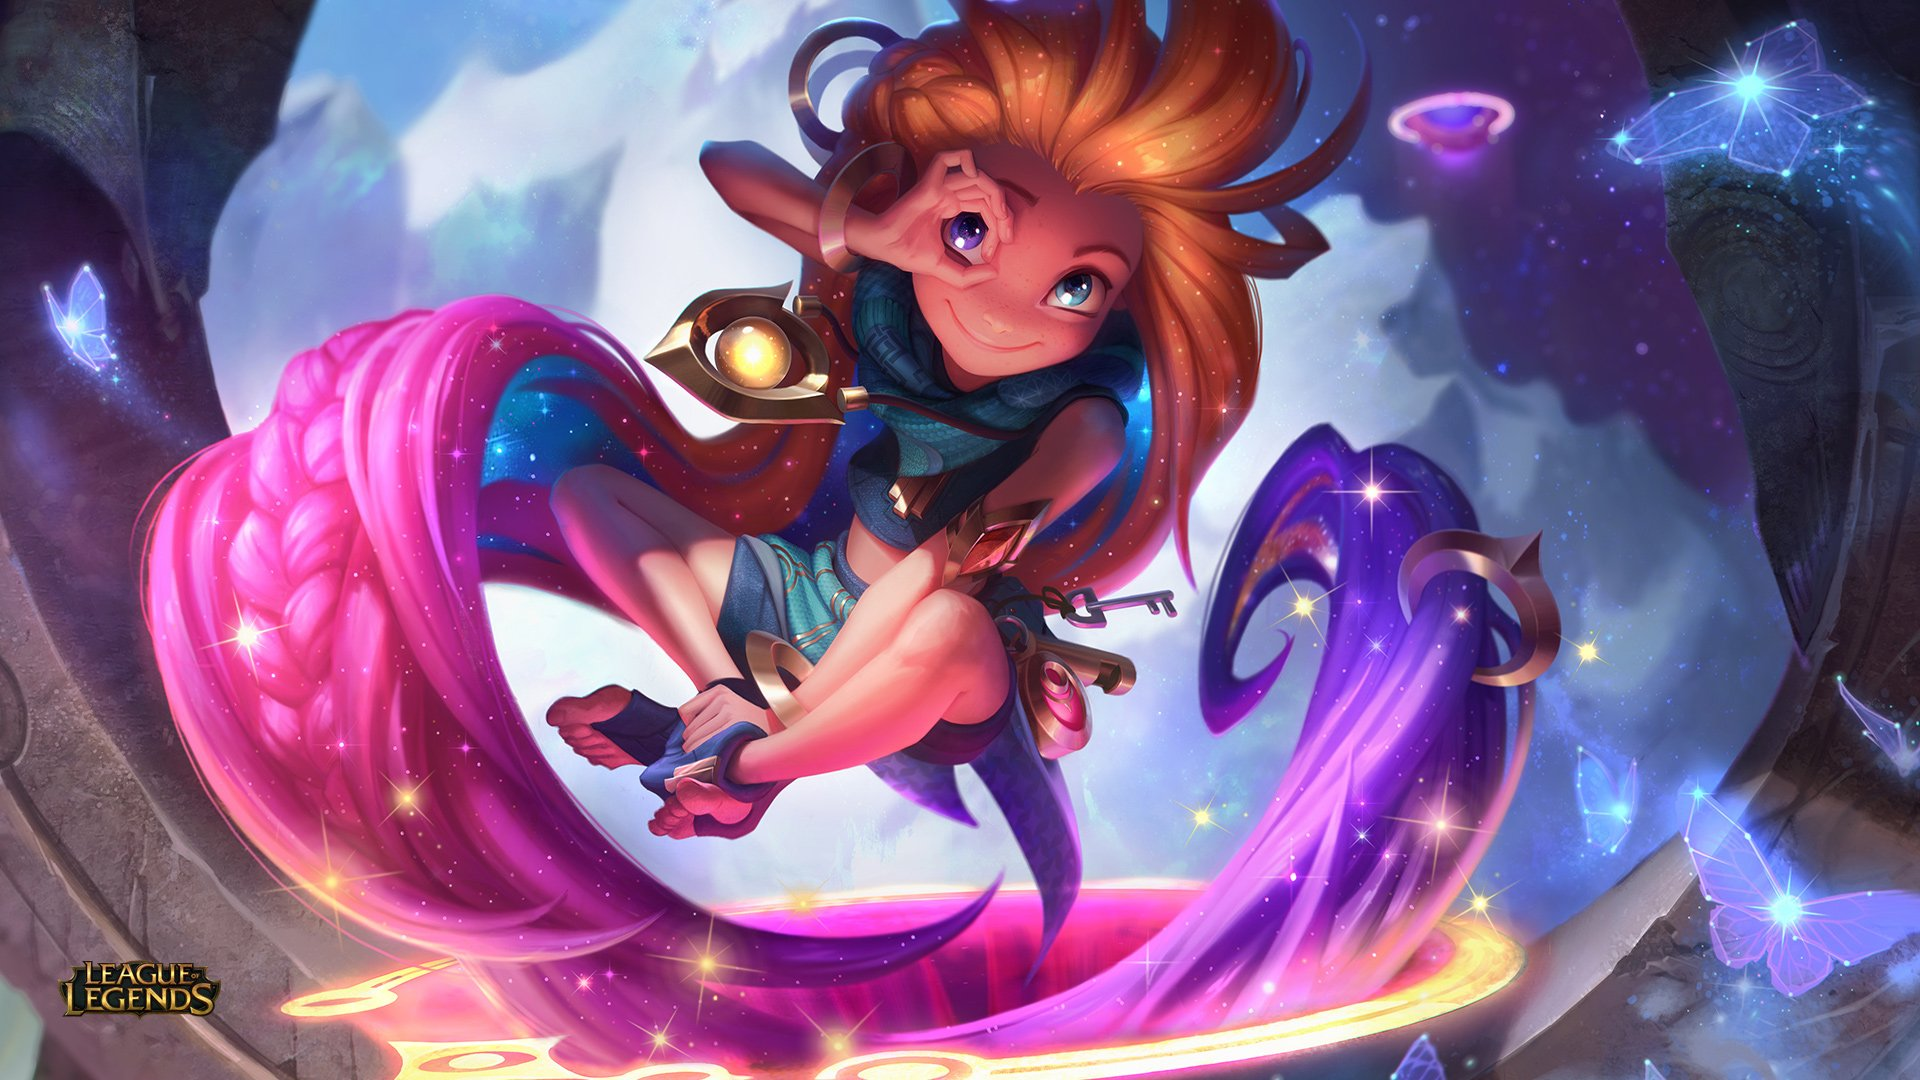 10 zoe league of legends hd wallpapers background - Zoe wallpaper ...